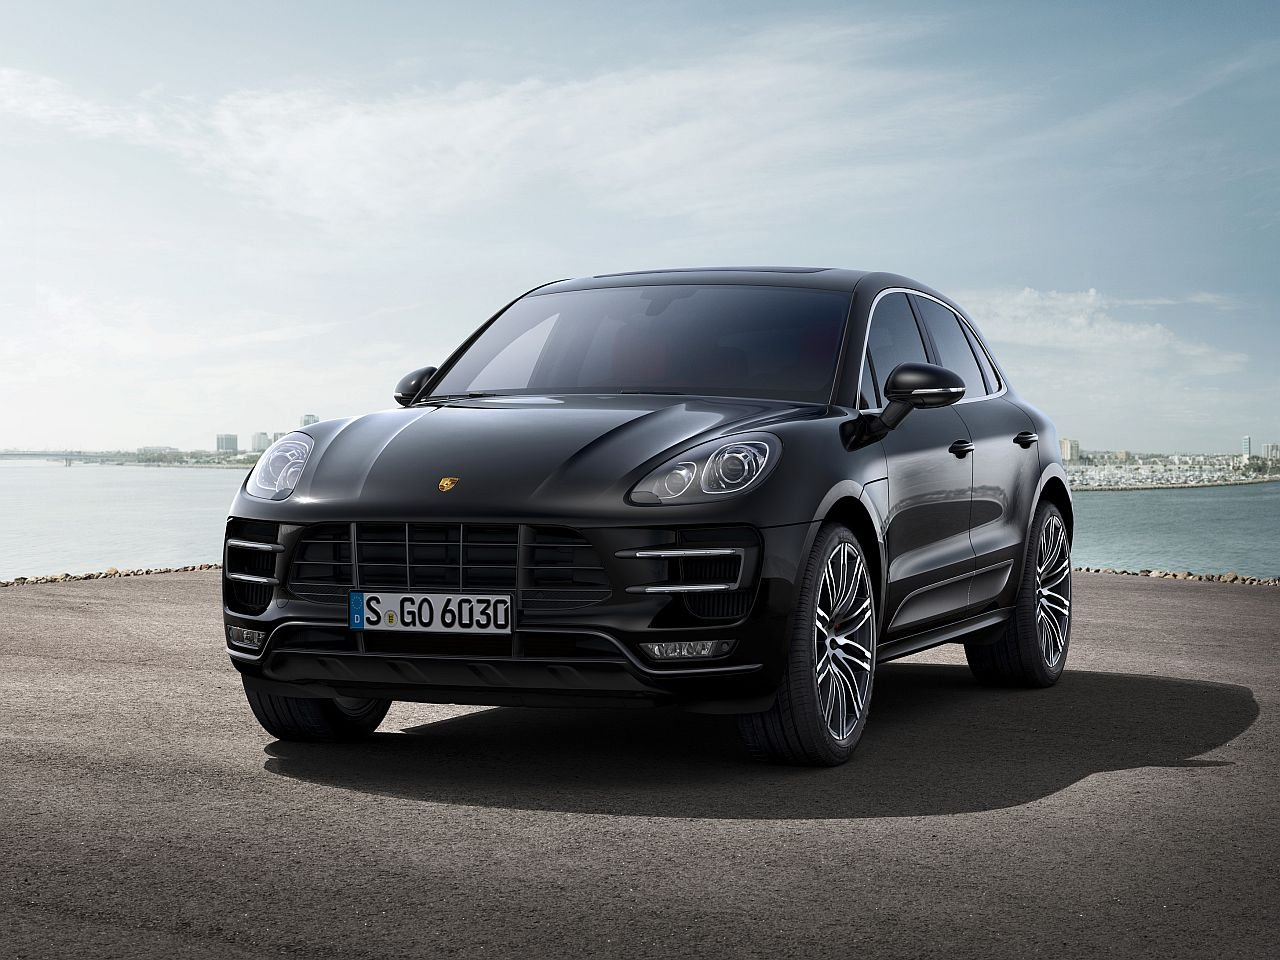 Porsche Macan Turbo 13 High Resolution Car Wallpaper